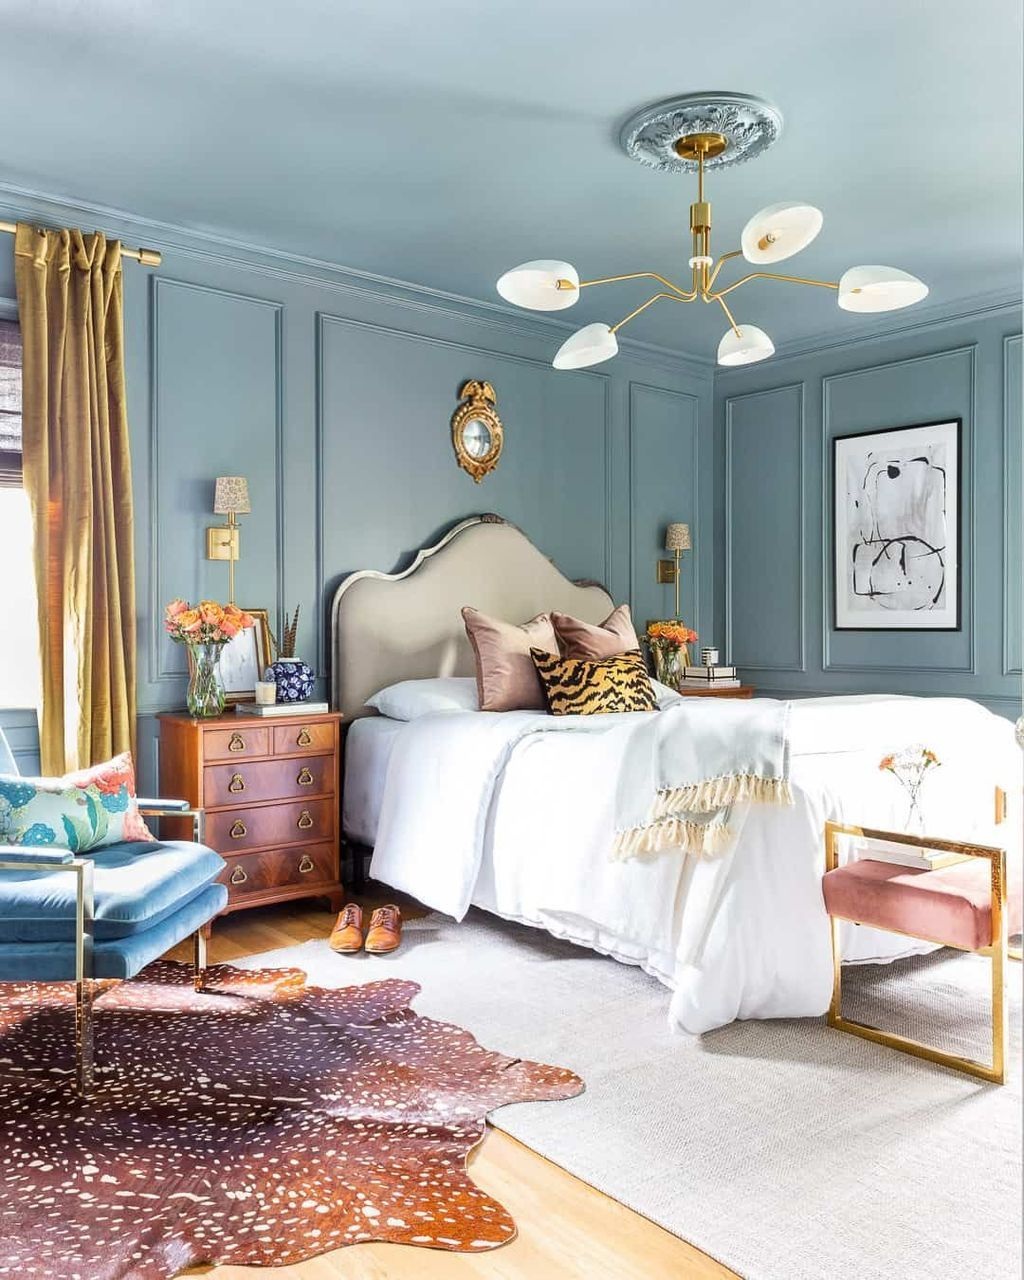 33 Fabulous Bedroom Color Ideas Master Bedroom Makeover Bedroom Makeover Bedroom Colors